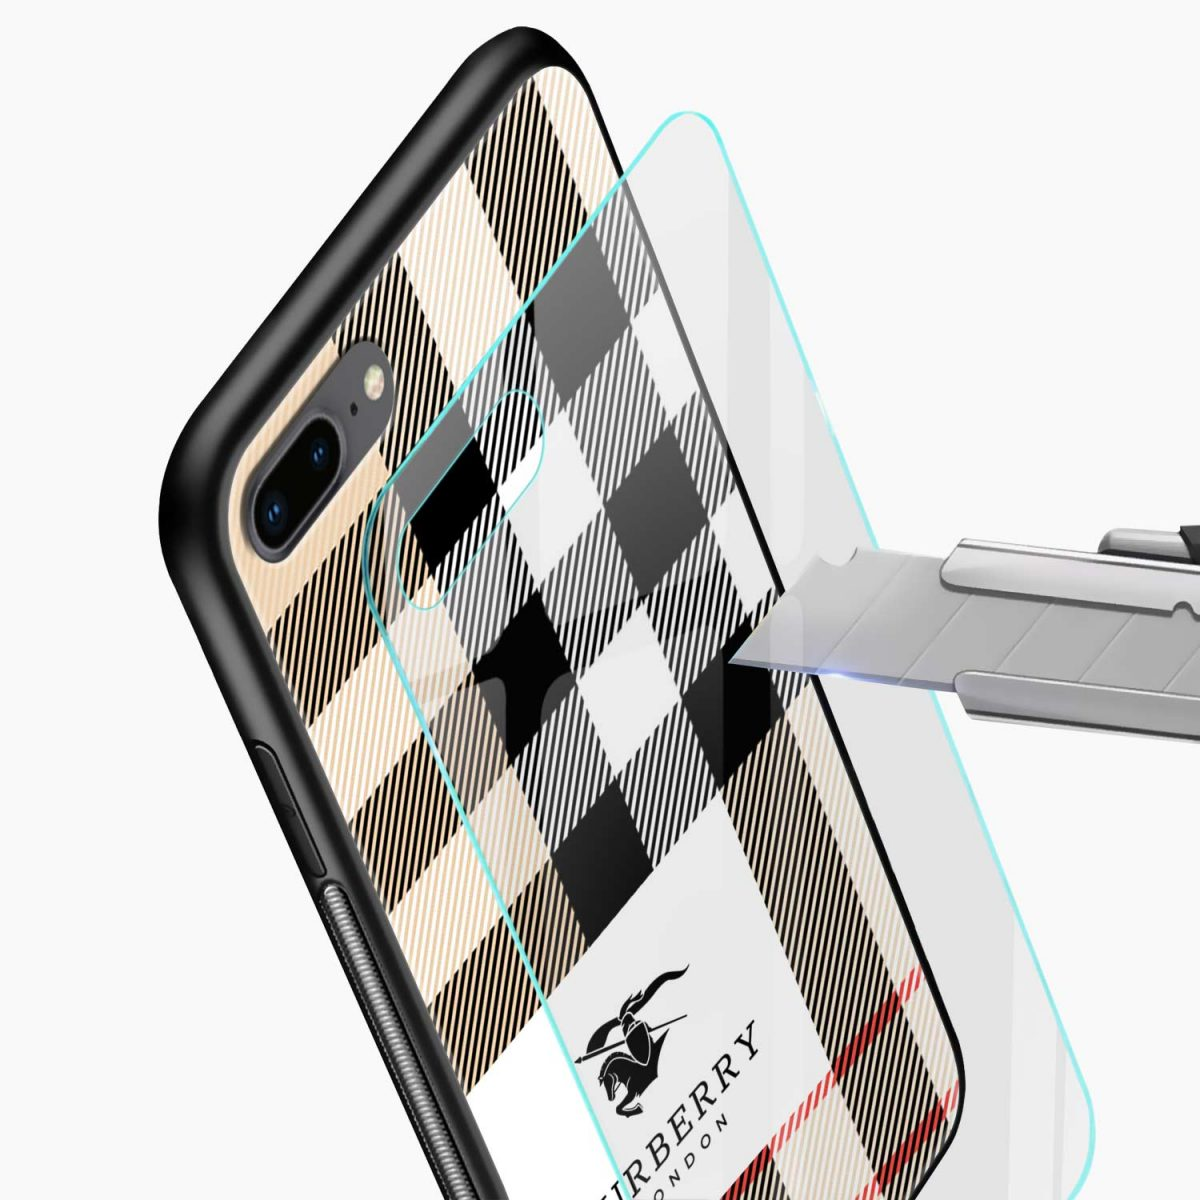 burberry cross lines pattern glass view apple iphone 7 8 plus back cover